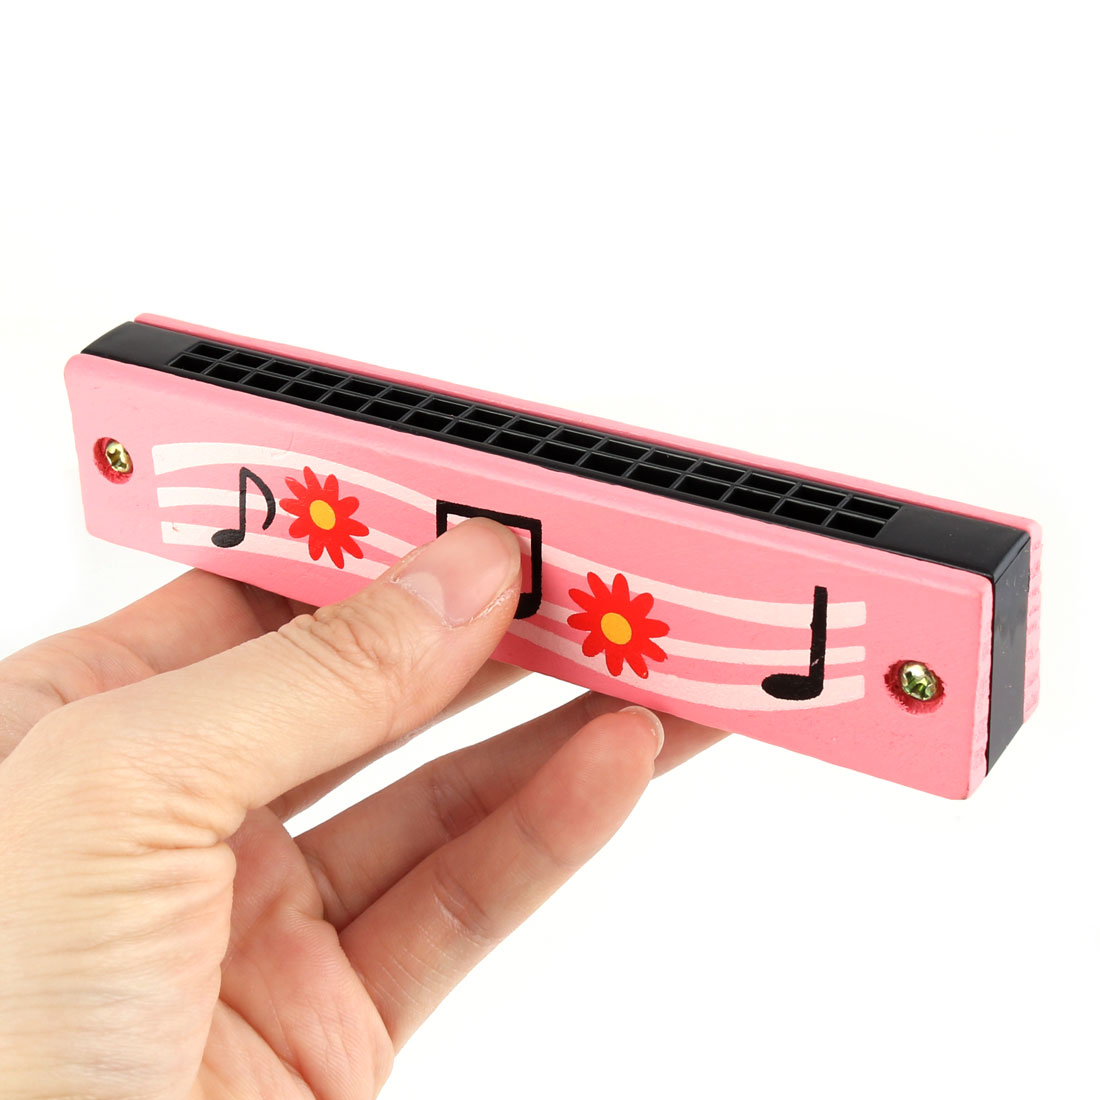 "5"" Wooden Harmonica Mouth Organ w 32 Holes Pink Floral Music Note Print Educational Toy for - image 2 de 3"